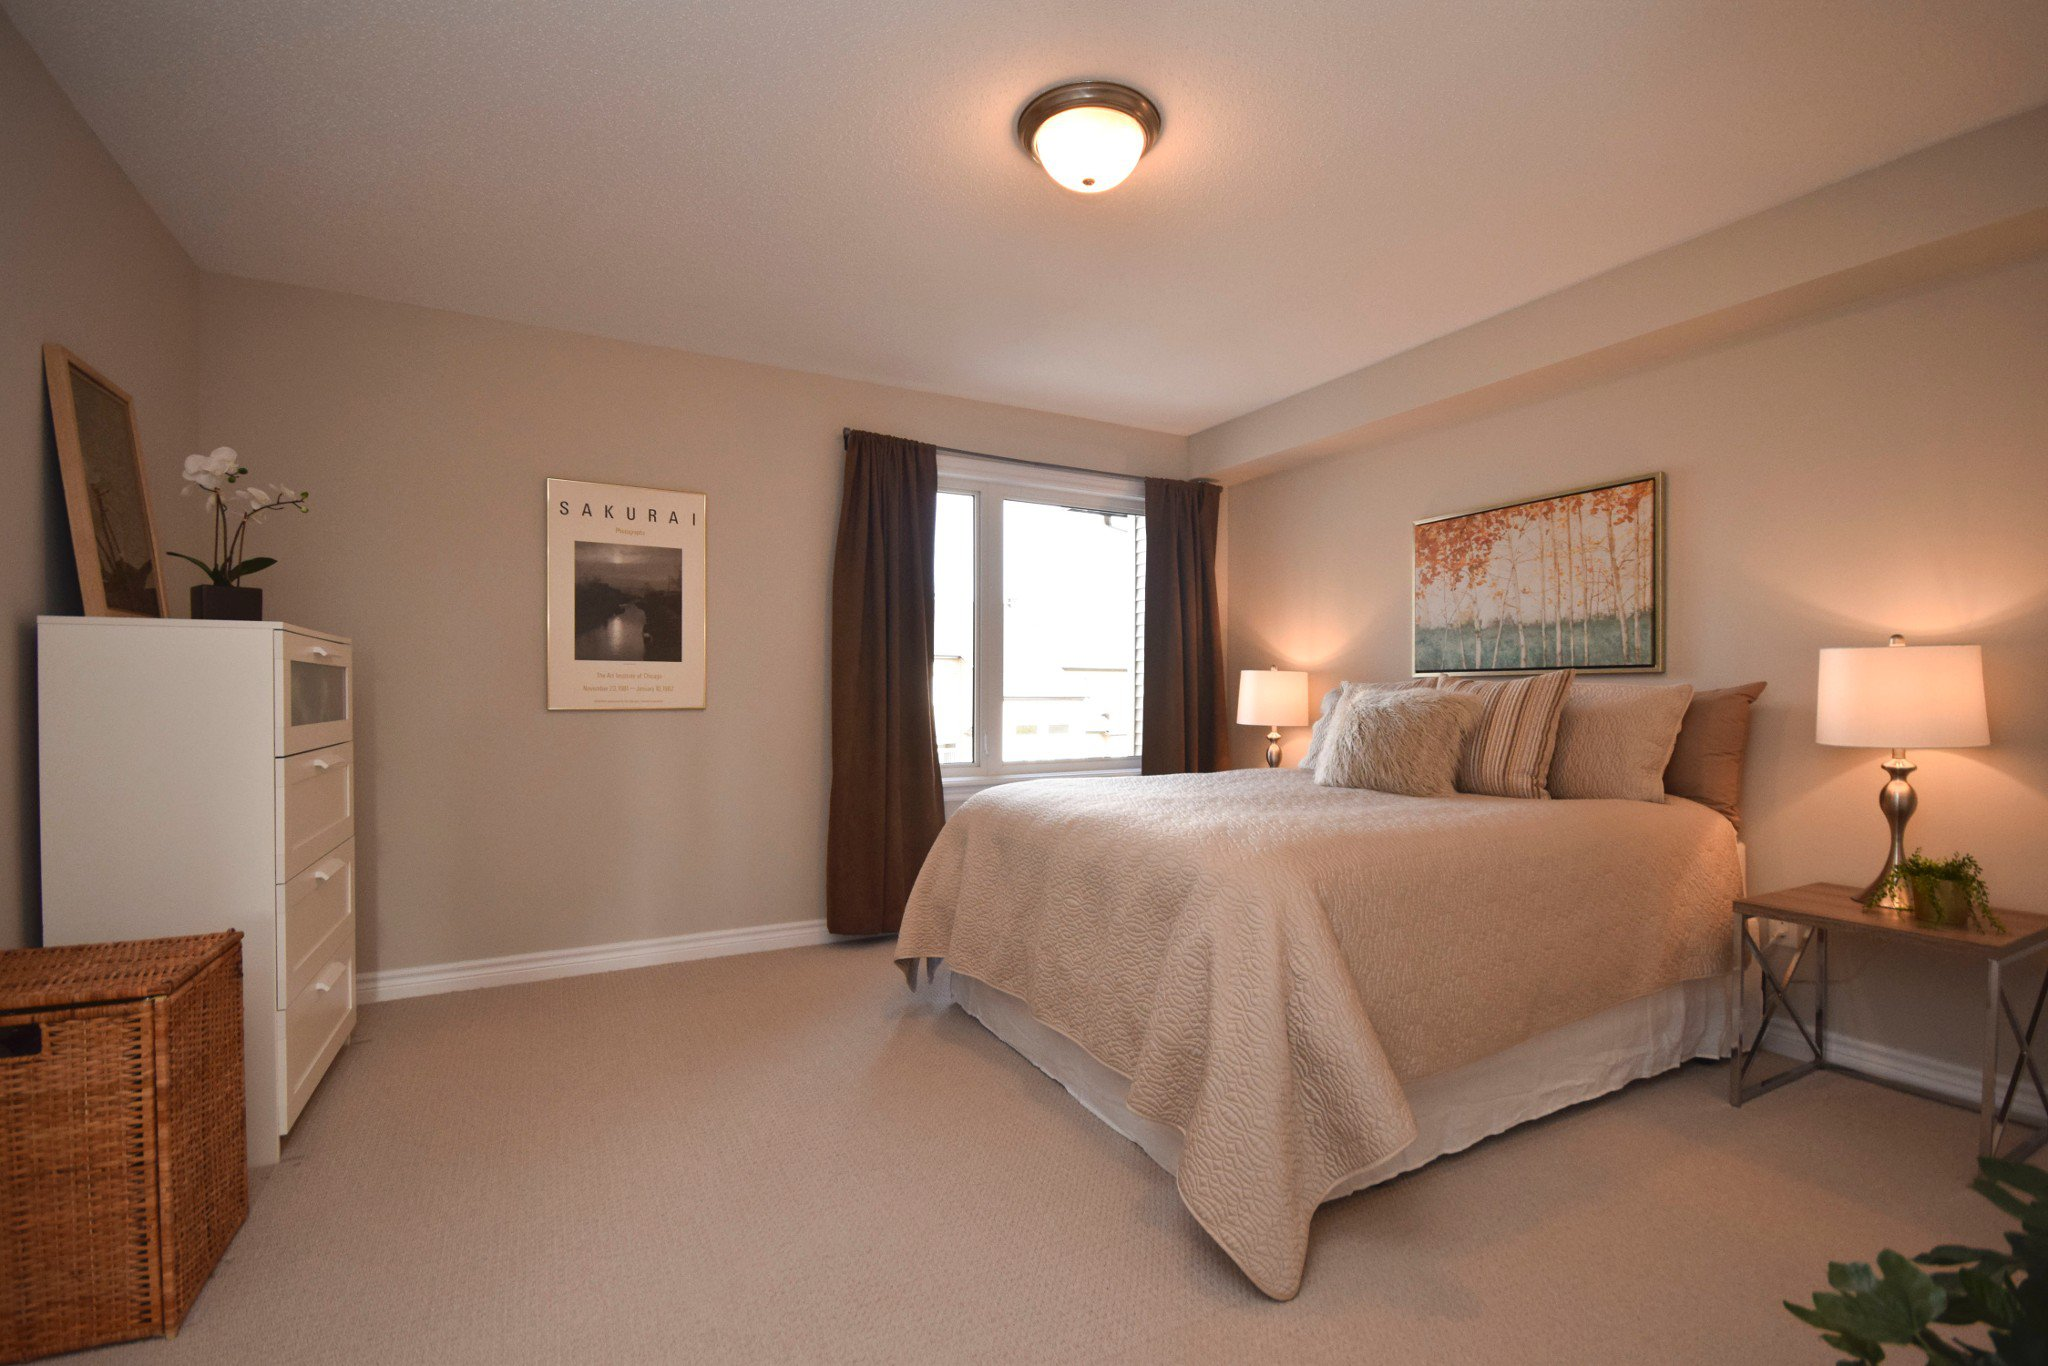 Photo 37: Photos: 131 Popplewell Crescent in Ottawa: Cedargrove / Fraserdale House for sale (Barrhaven)  : MLS®# 1130335